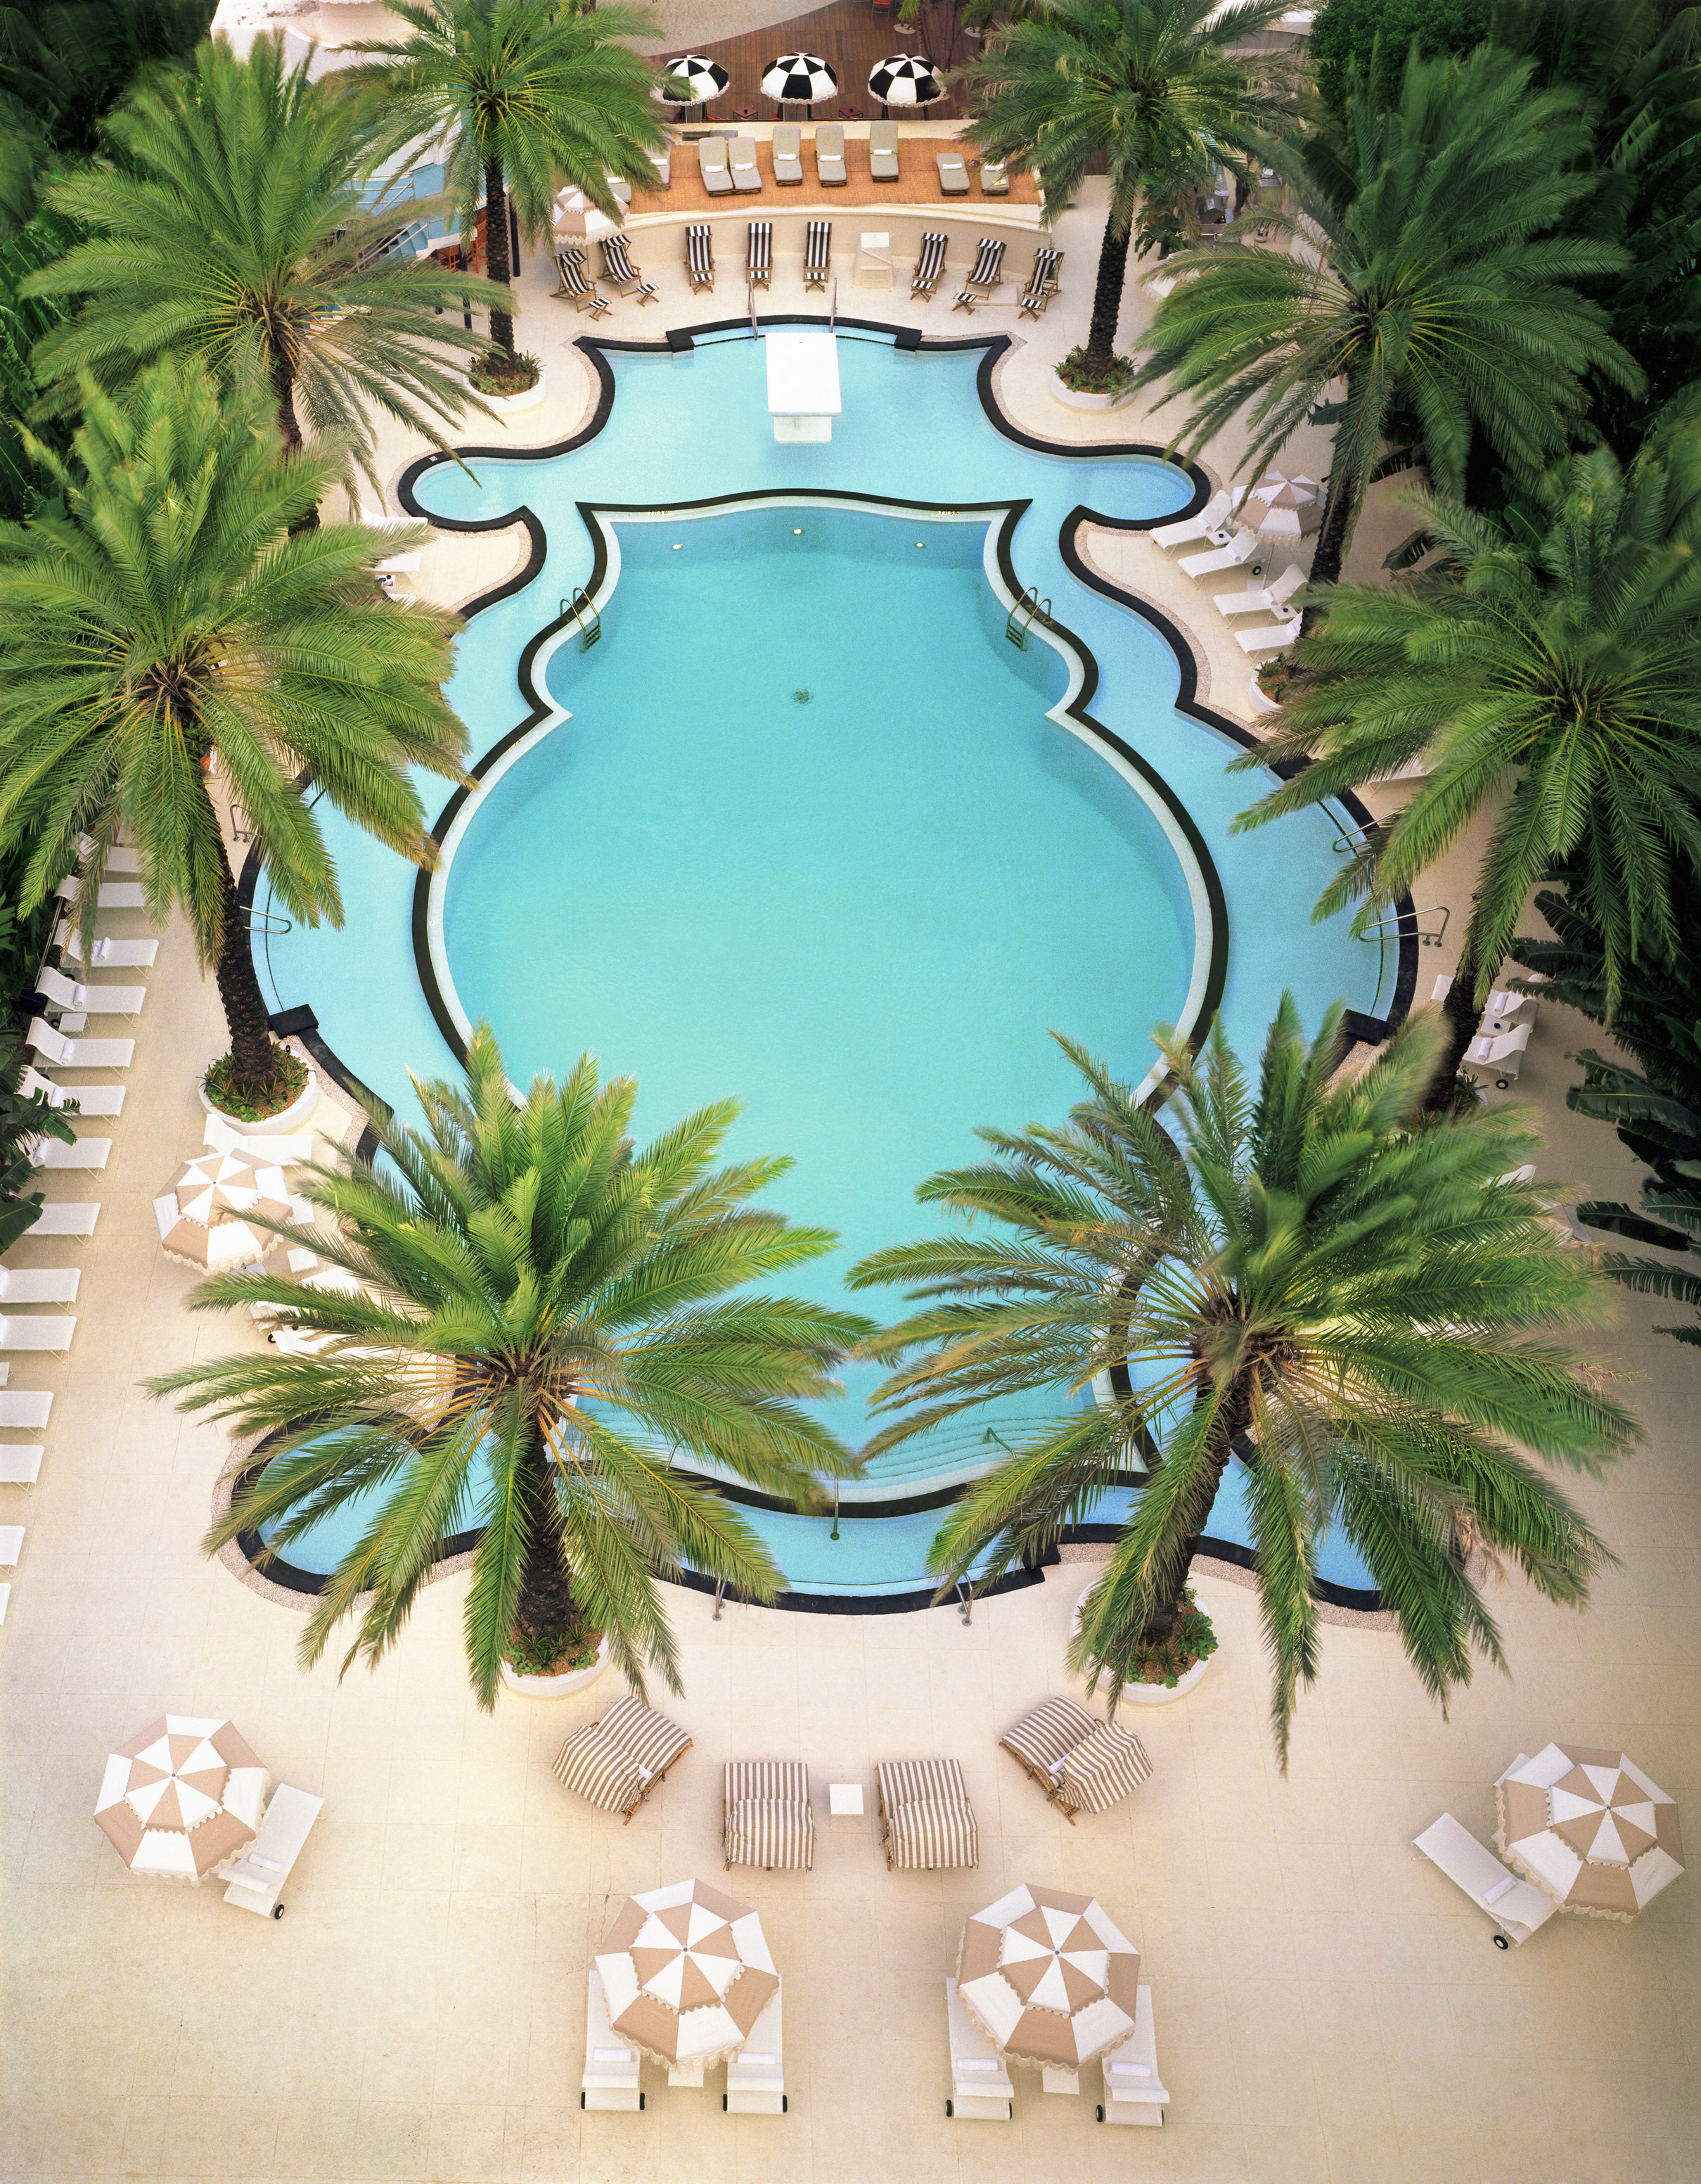 18 Of The World's Most Amazing Hotels With Pools